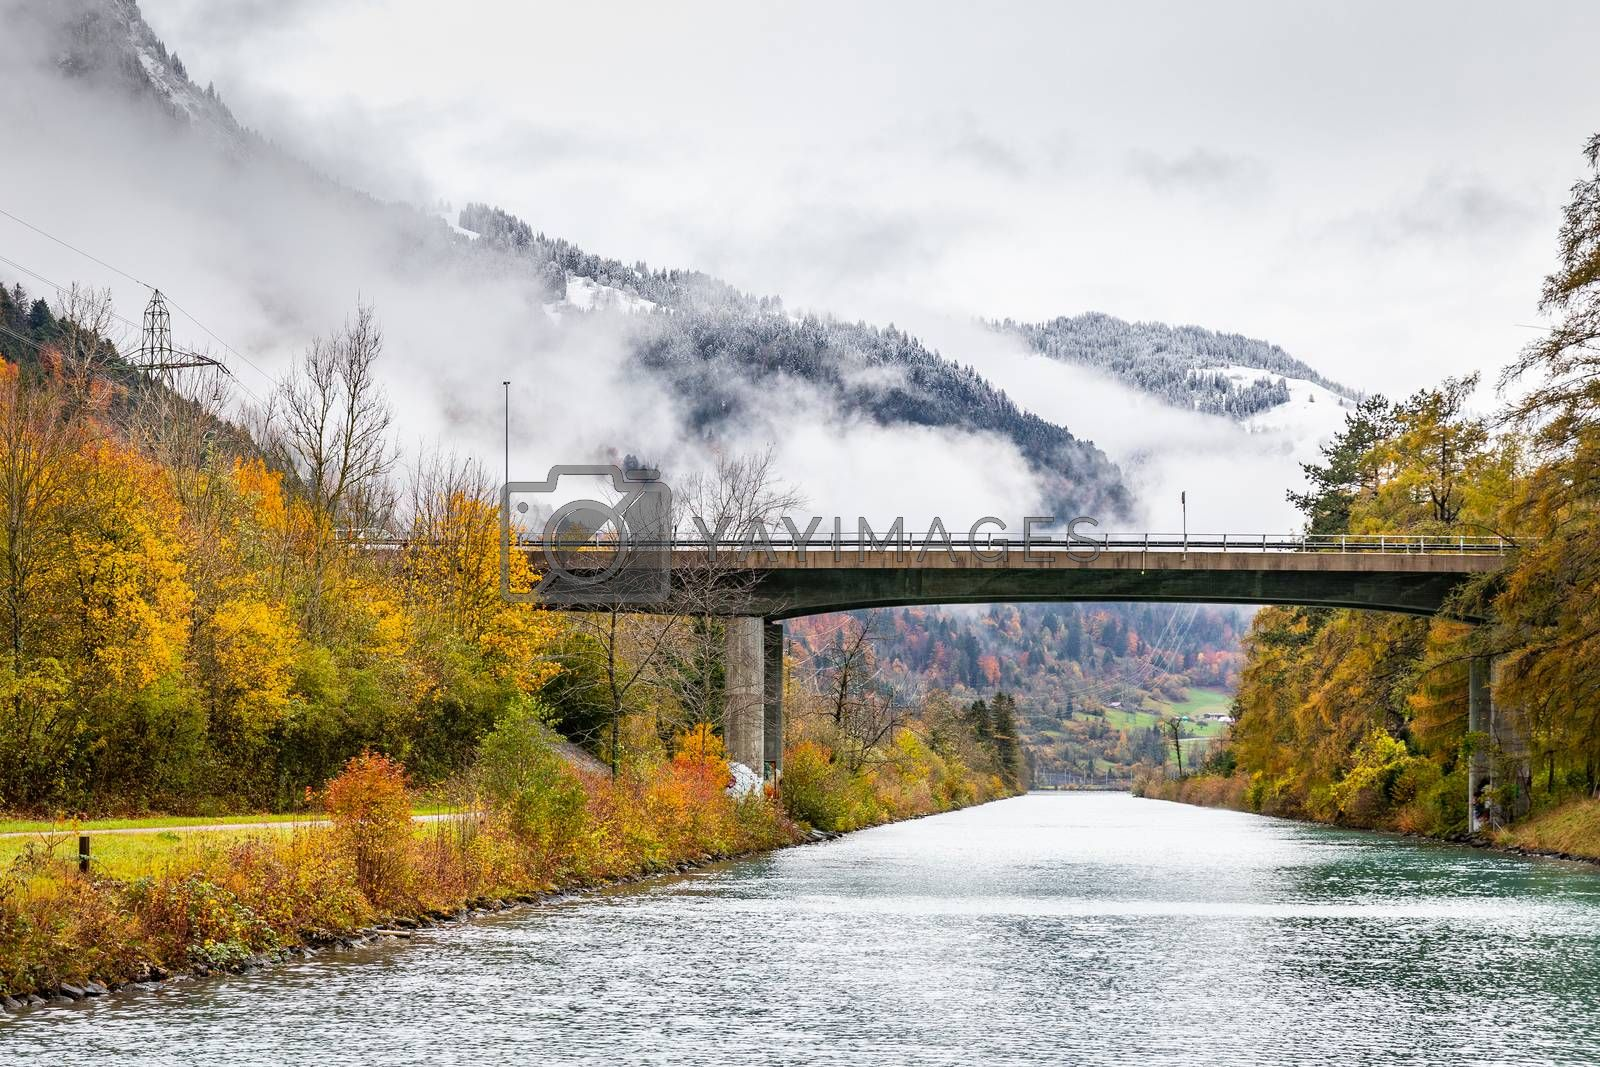 Road bridge across river to Thun lake, Interlaken, Switzerland. Early winter of November 2019, snow start to cover mountain area with cold temperature.